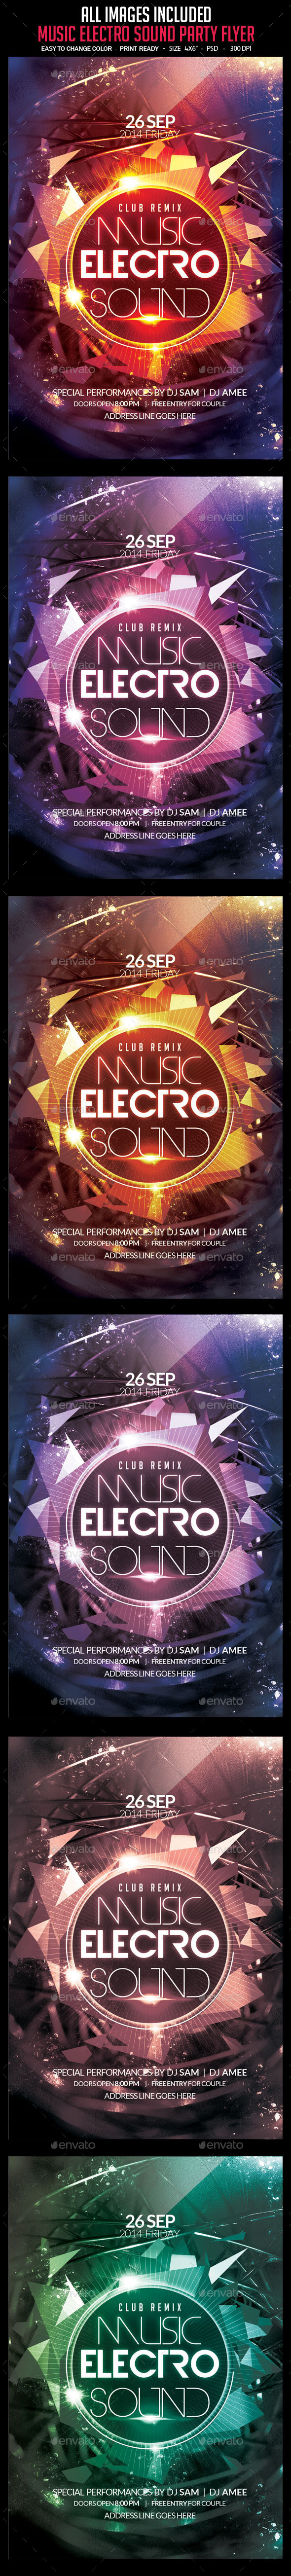 Music Electro Sound Party Flyer - Clubs & Parties Events